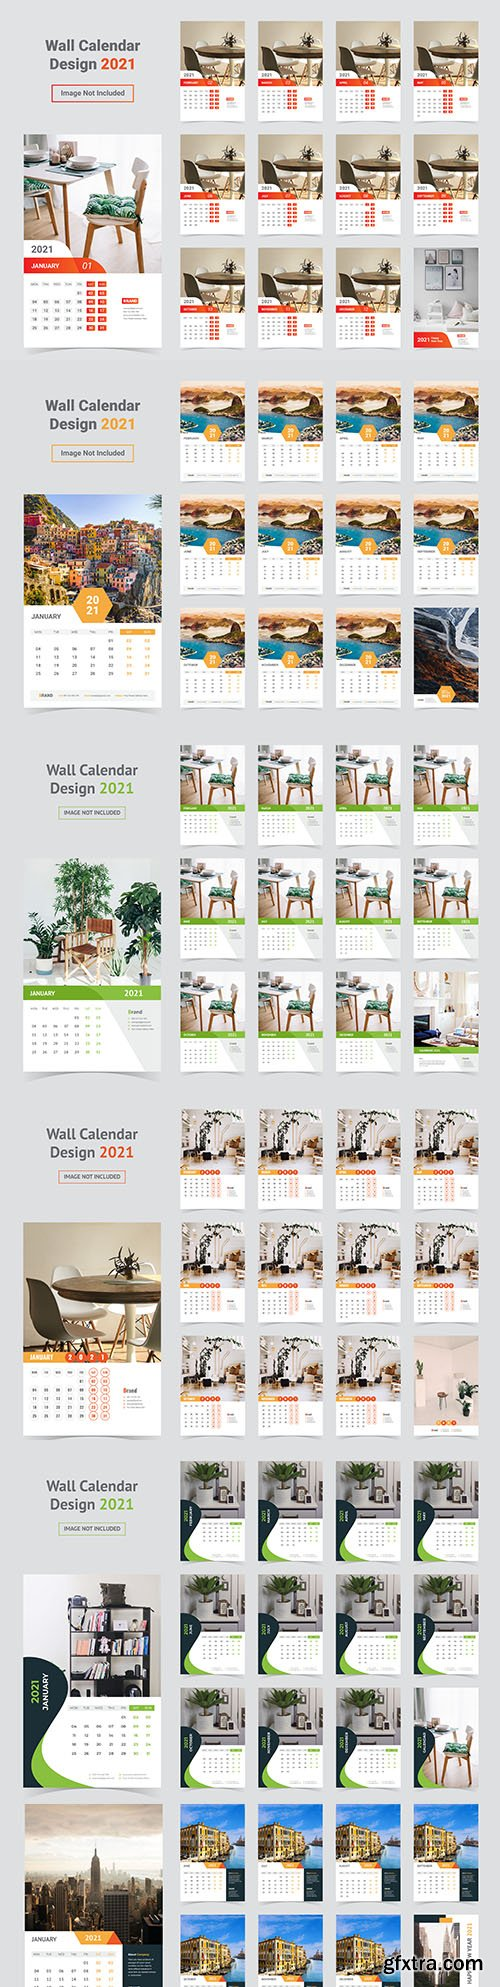 Wall calendar design for 2021 with photo